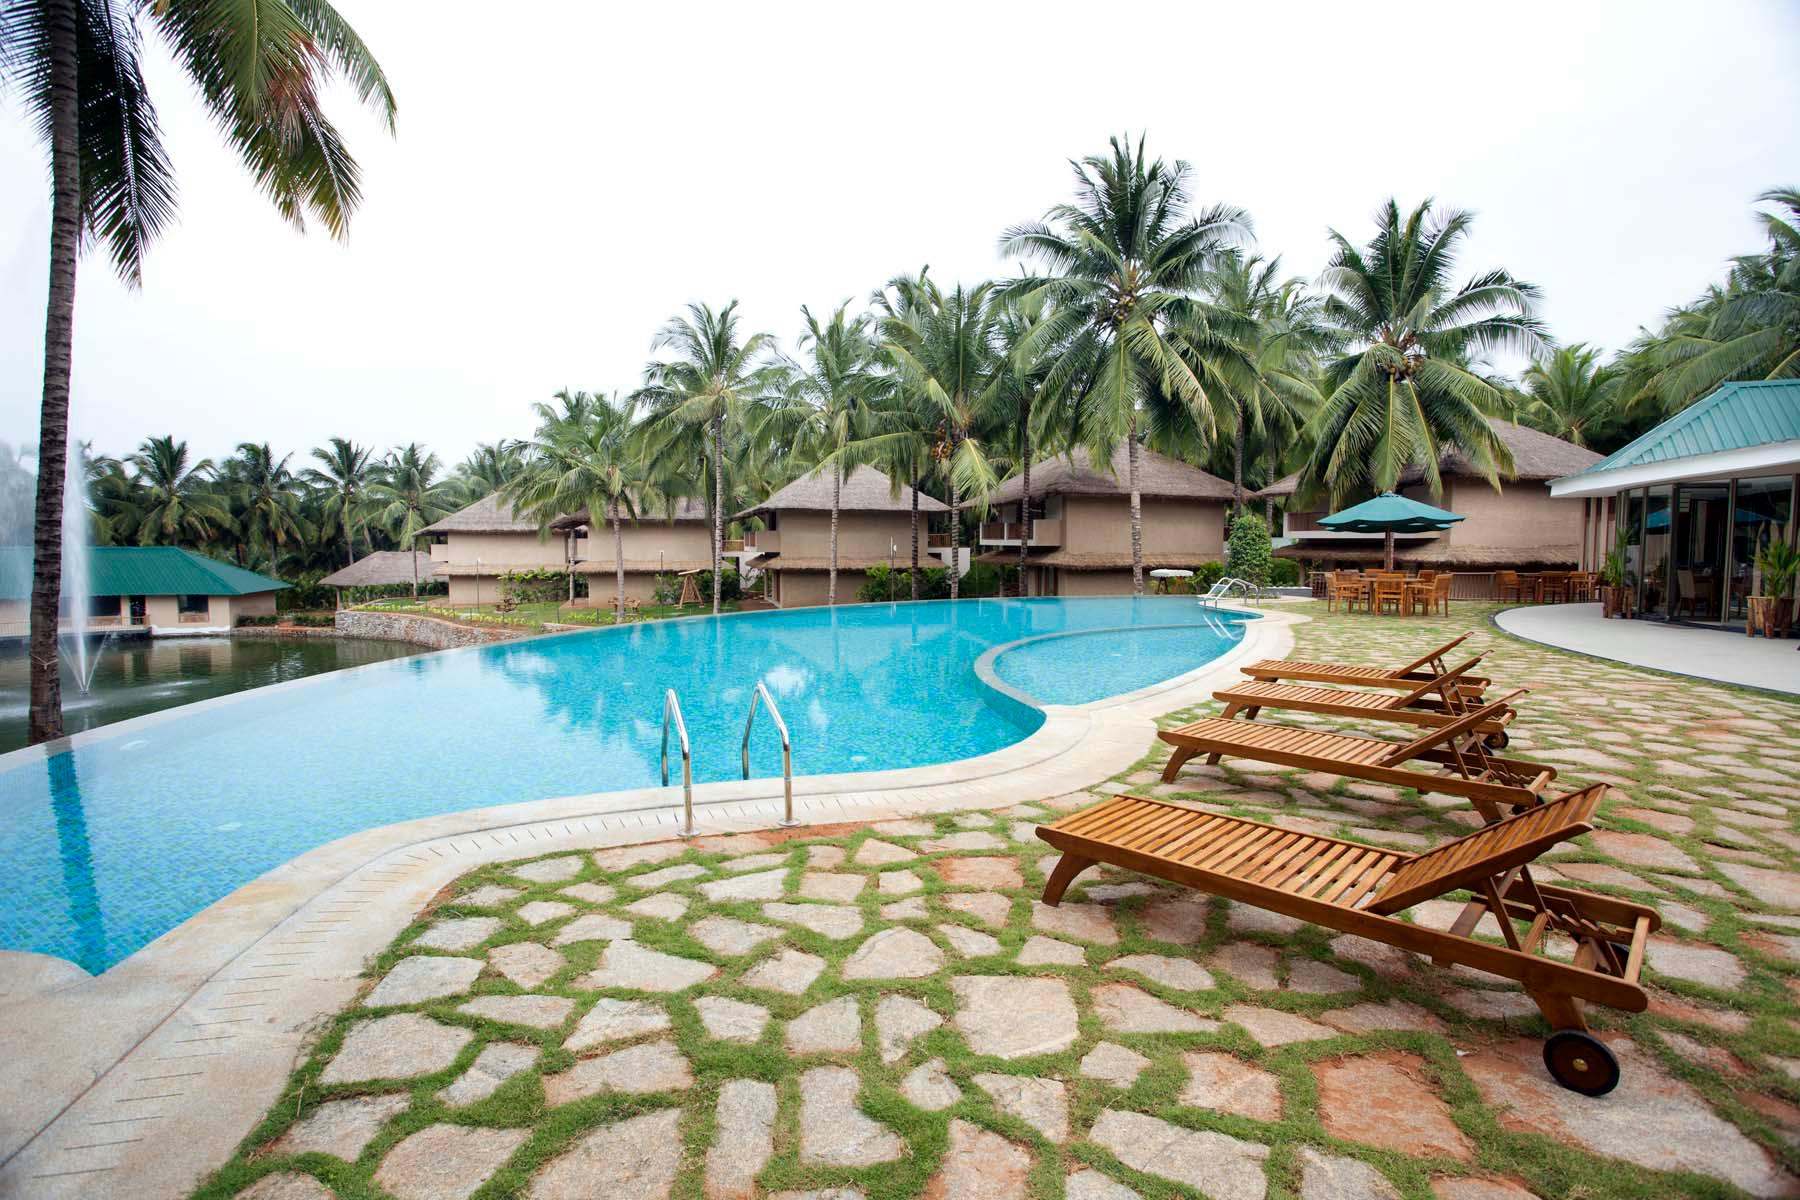 great-mount-coco-lagoon-resort-coimbatore-tamil-nadu-10